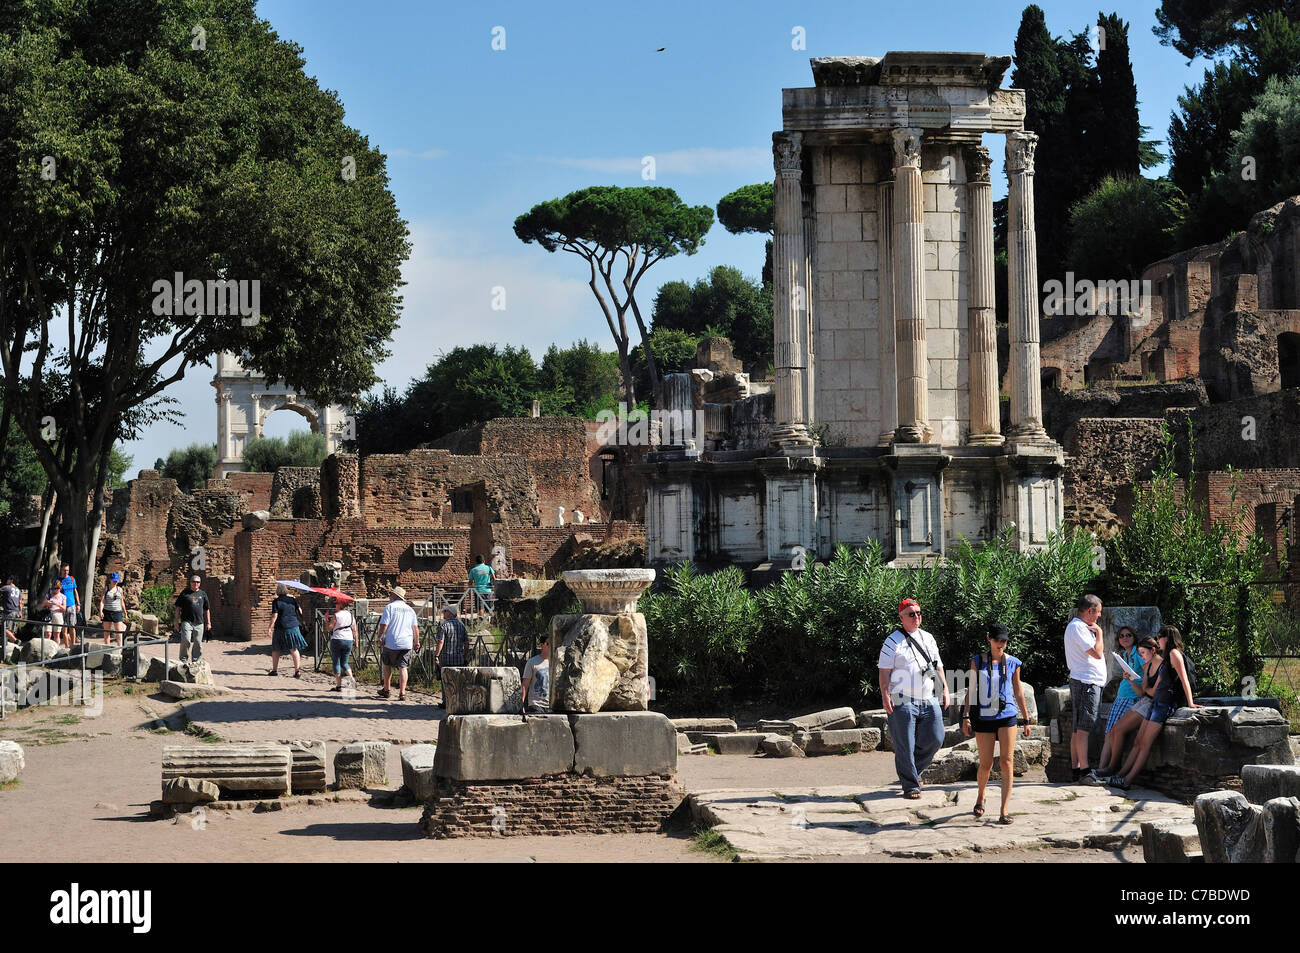 Rome. Italy. Tourists wander amongst the ruins of the Roman Forum (Foro Romano) . The remains of the Temple of Vesta - Stock Image